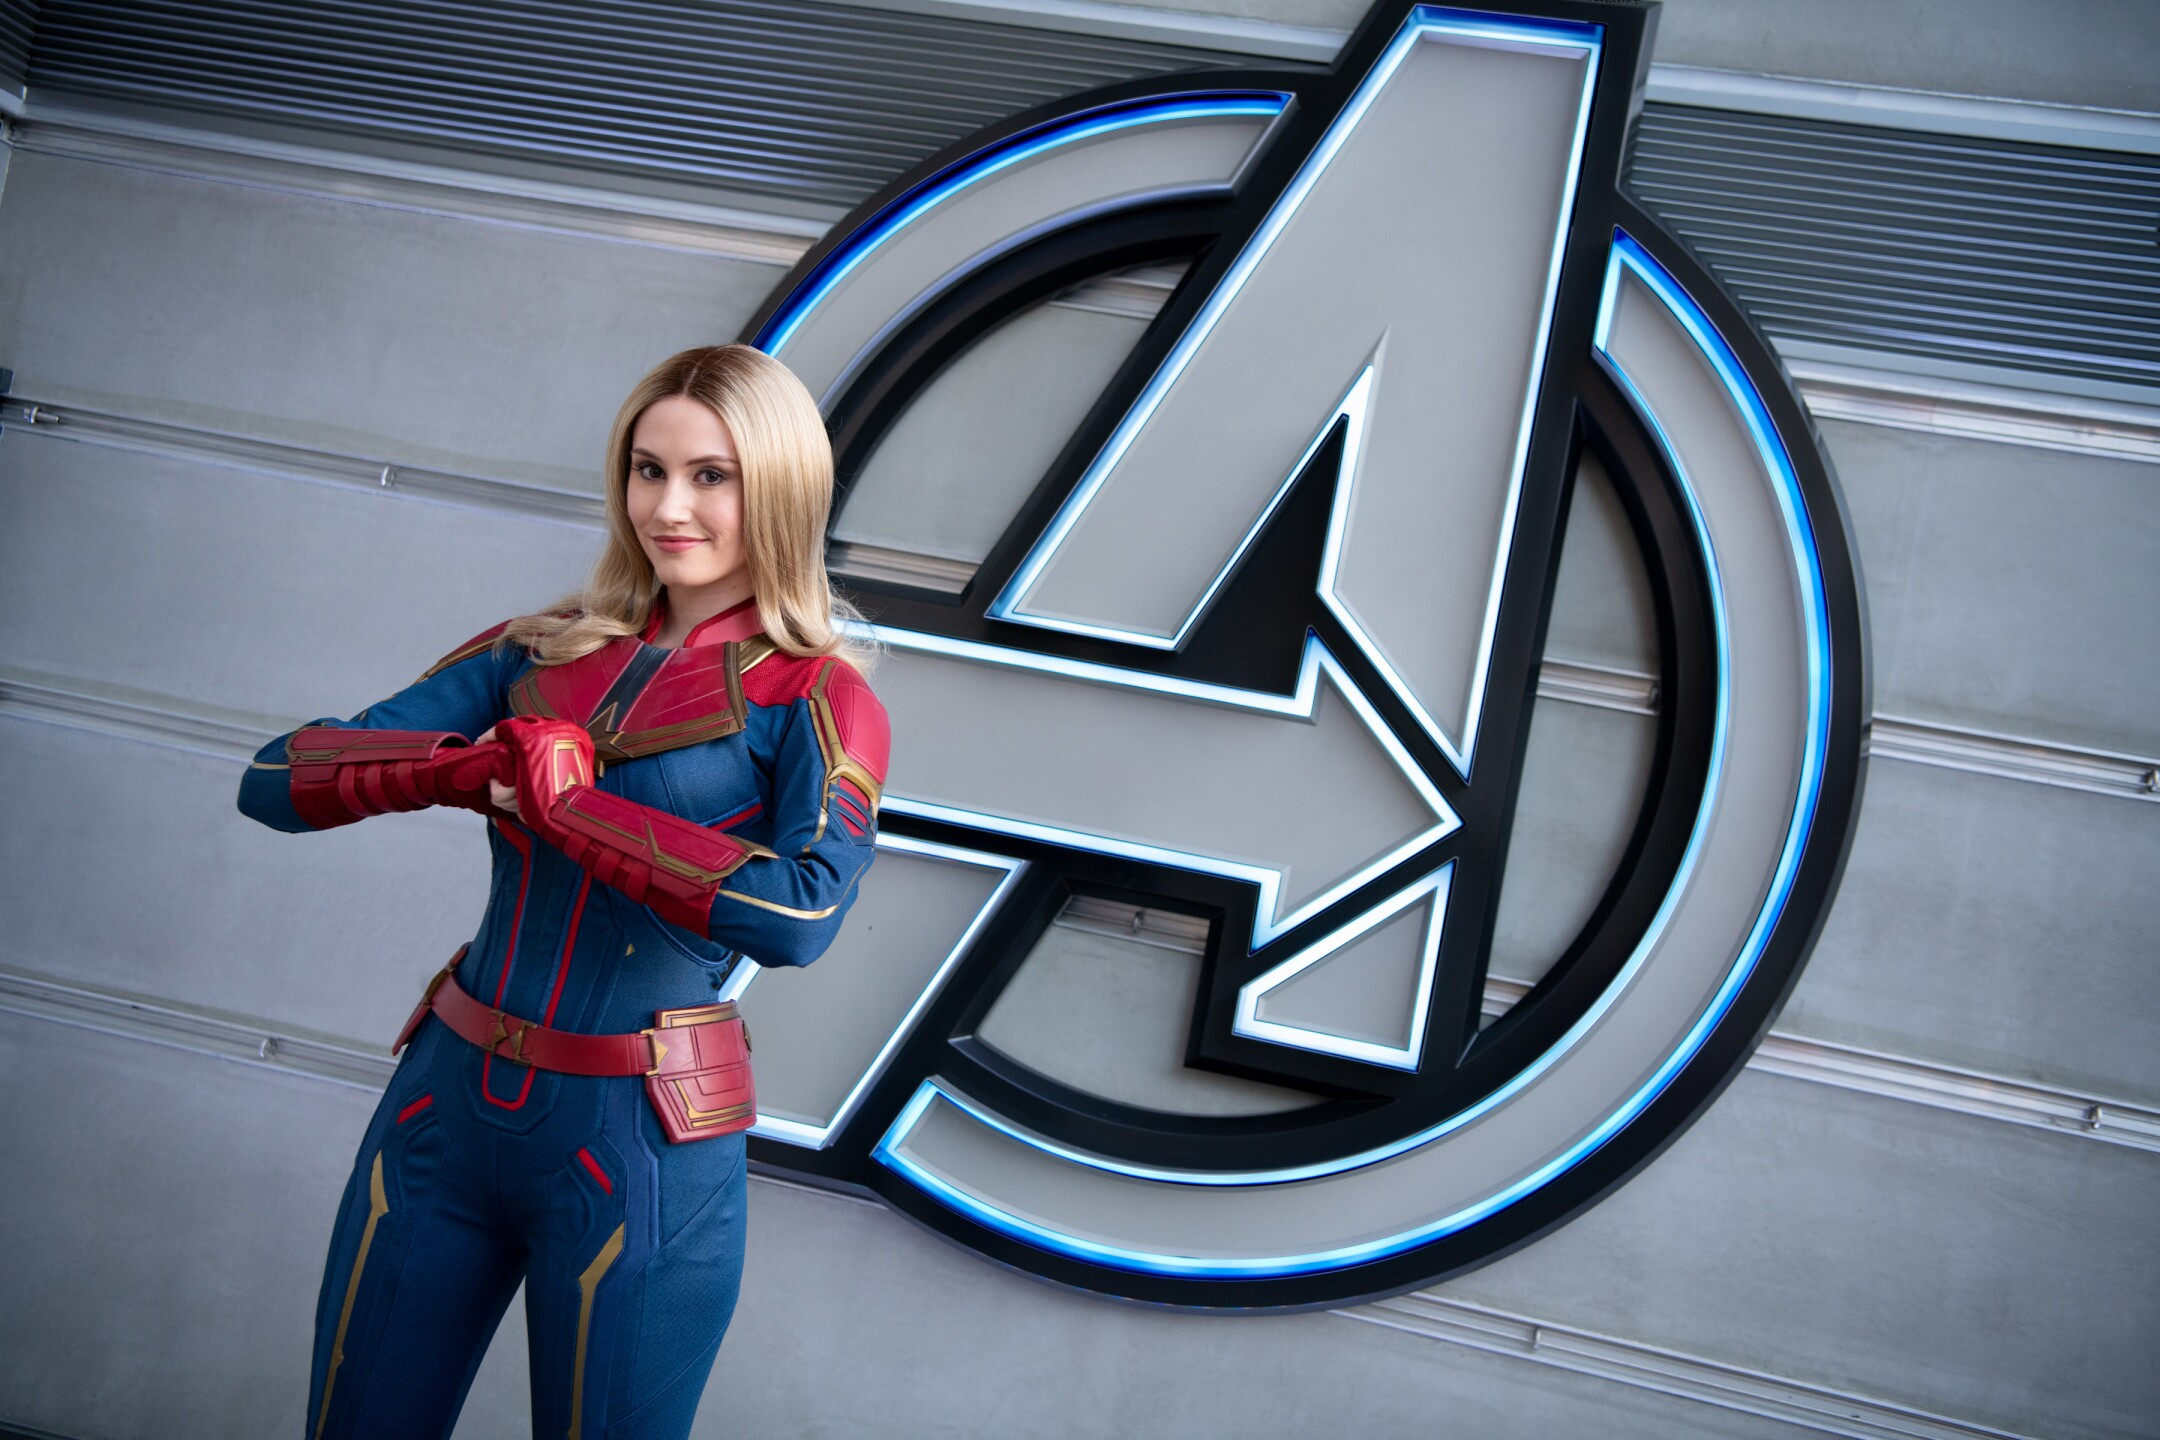 Captain Marvel at Avengers Campus